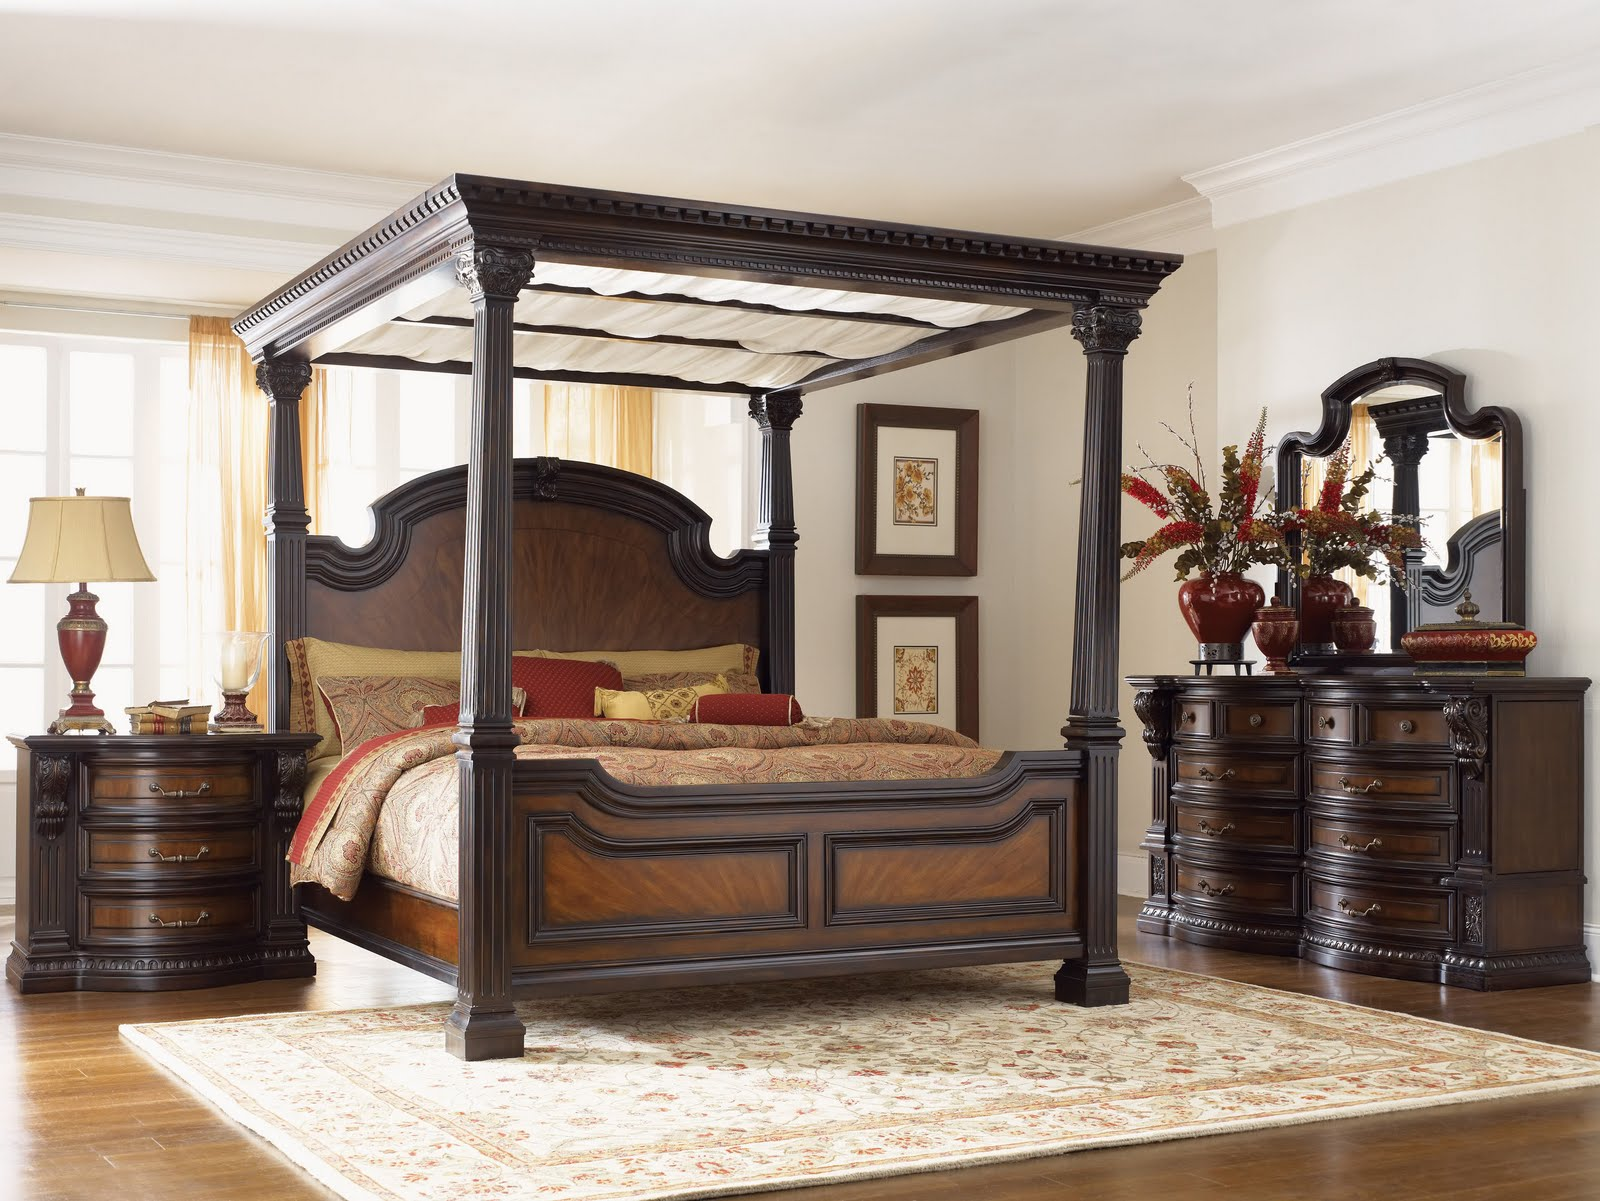 Awesome king canopy bed for classic bedroom ideas with king size canopy bed & Bedroom Design: Inspiring King Canopy Bed For Classic Bedroom ...